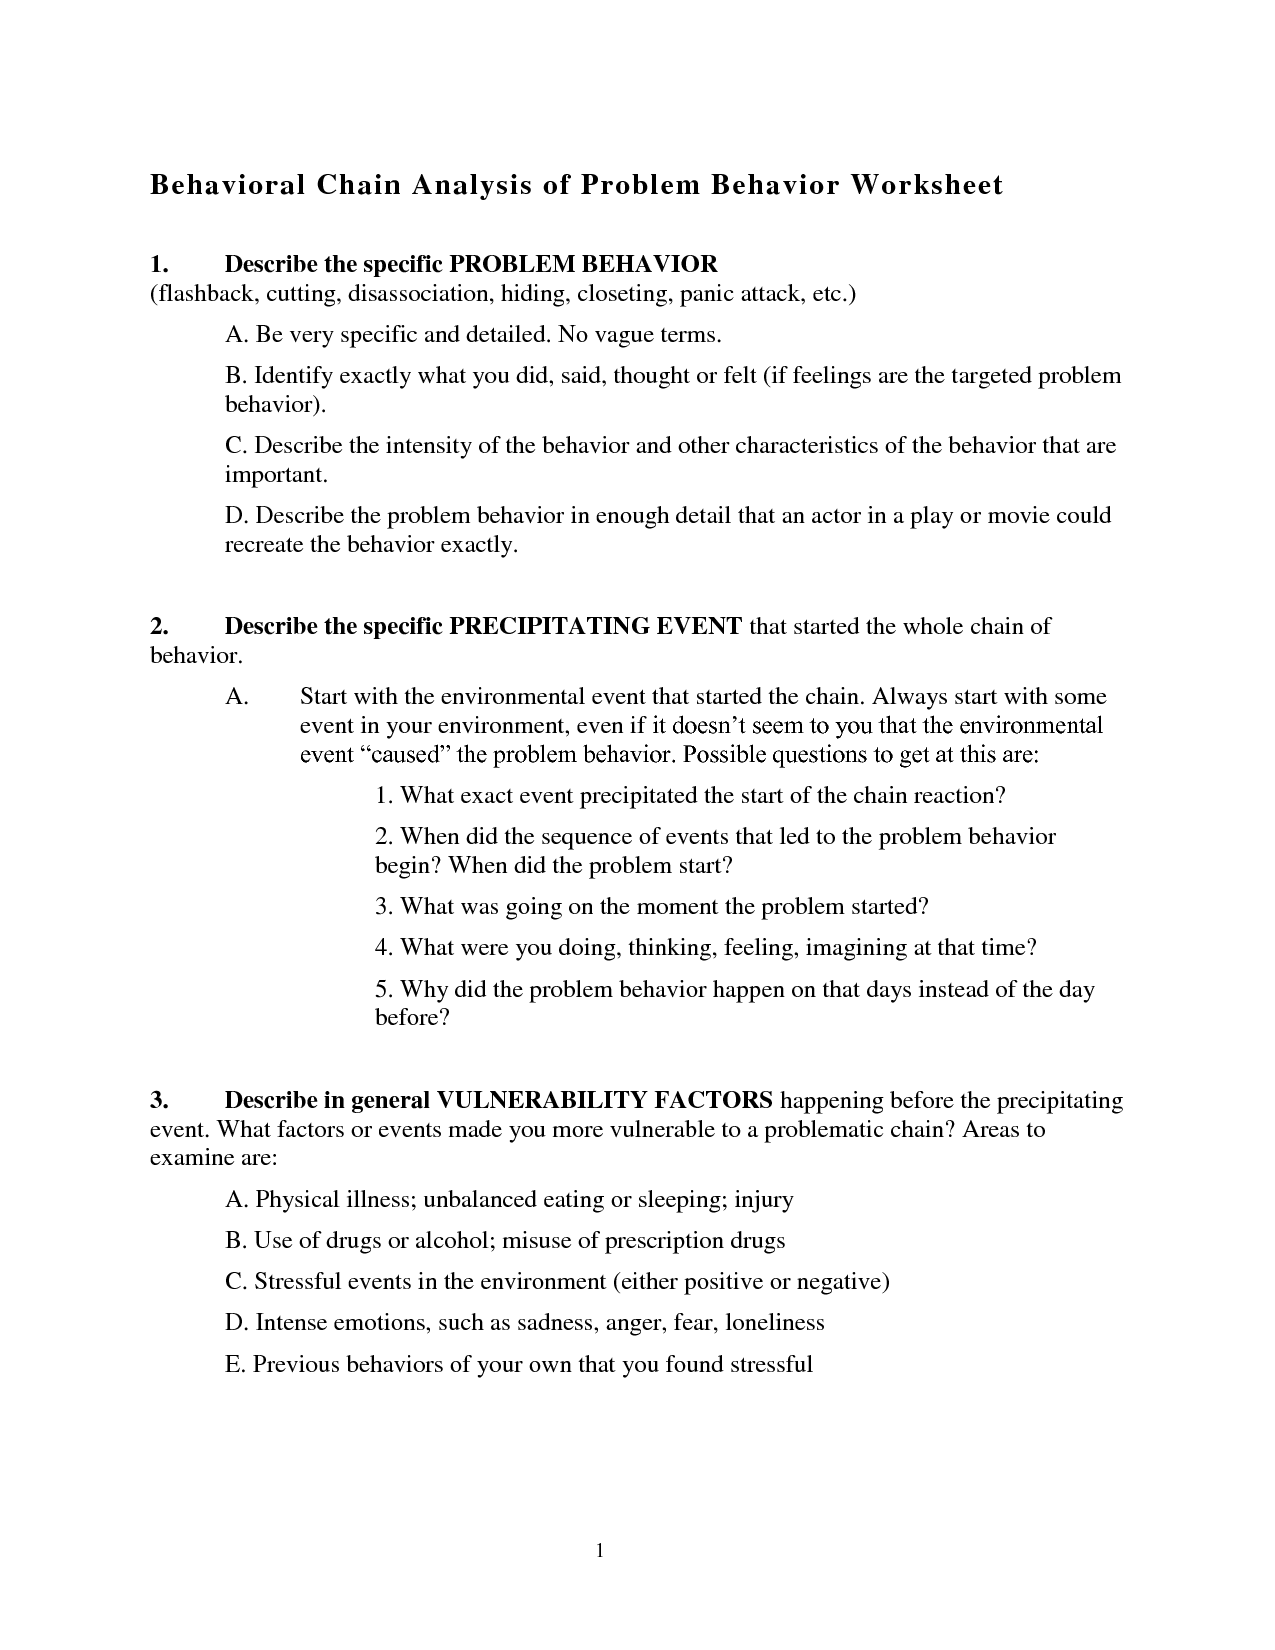 worksheet Art Analysis Worksheet 5 awesome behavioral chain analysis worksheet templates images dbt images